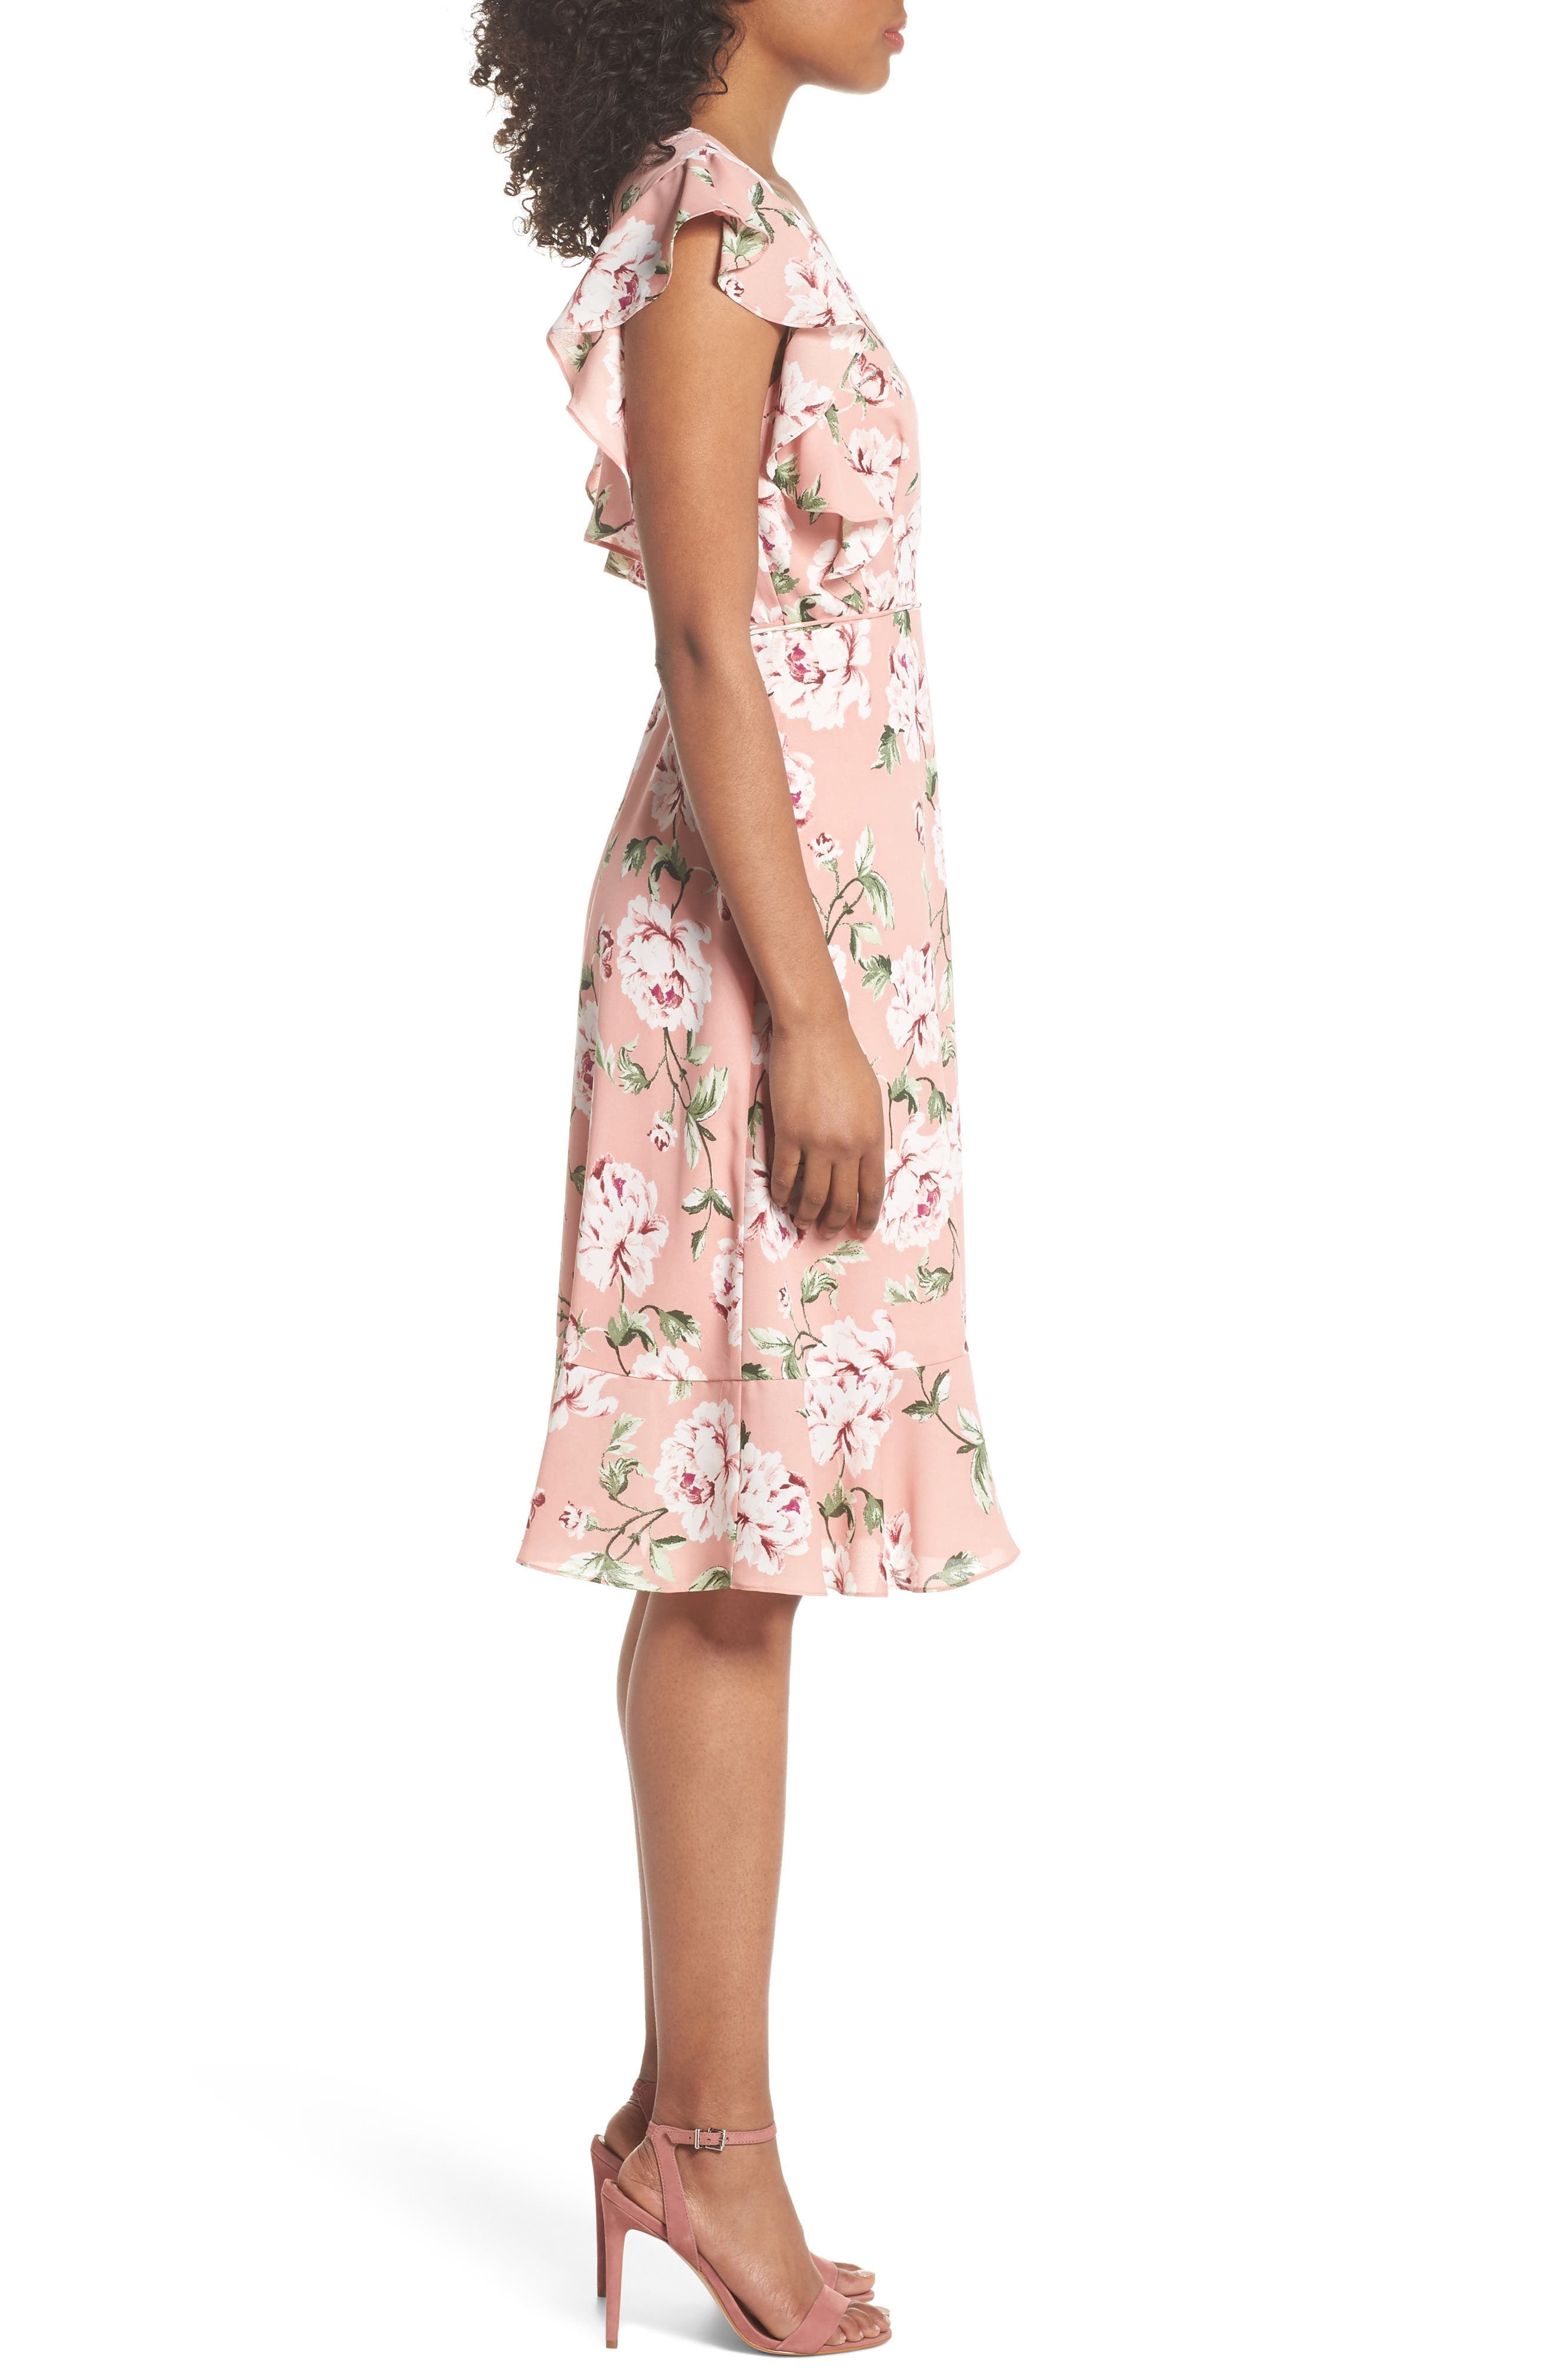 CHARLES HENRY, Ruffle Sleeve Floral Wrap Dress, Alternate thumbnail 4, color, 652